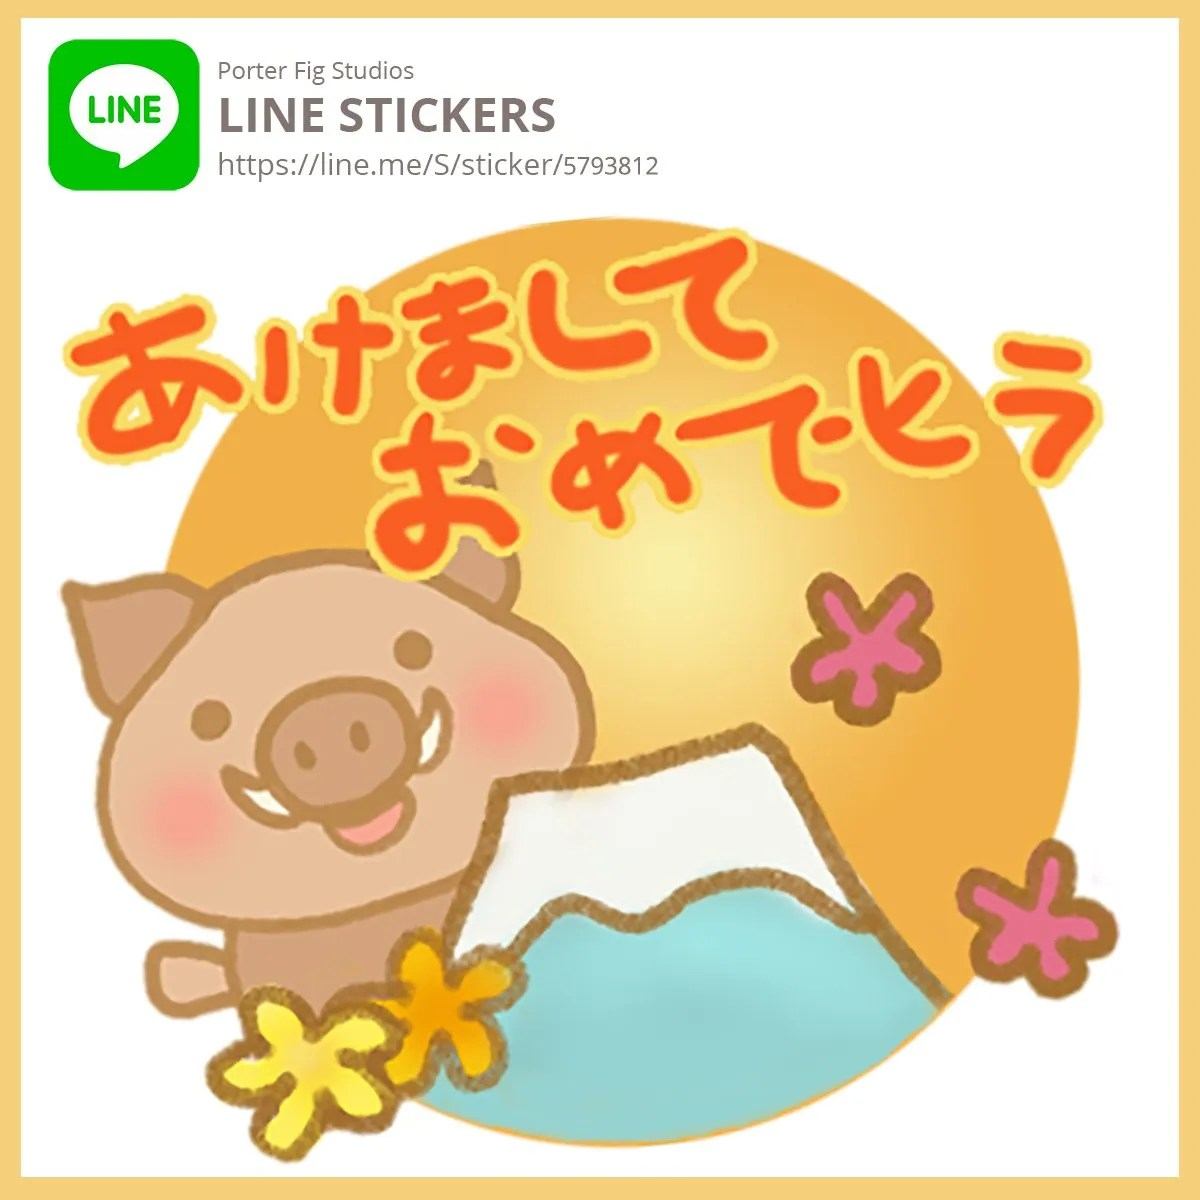 LINE sticker store greetings by porter fig